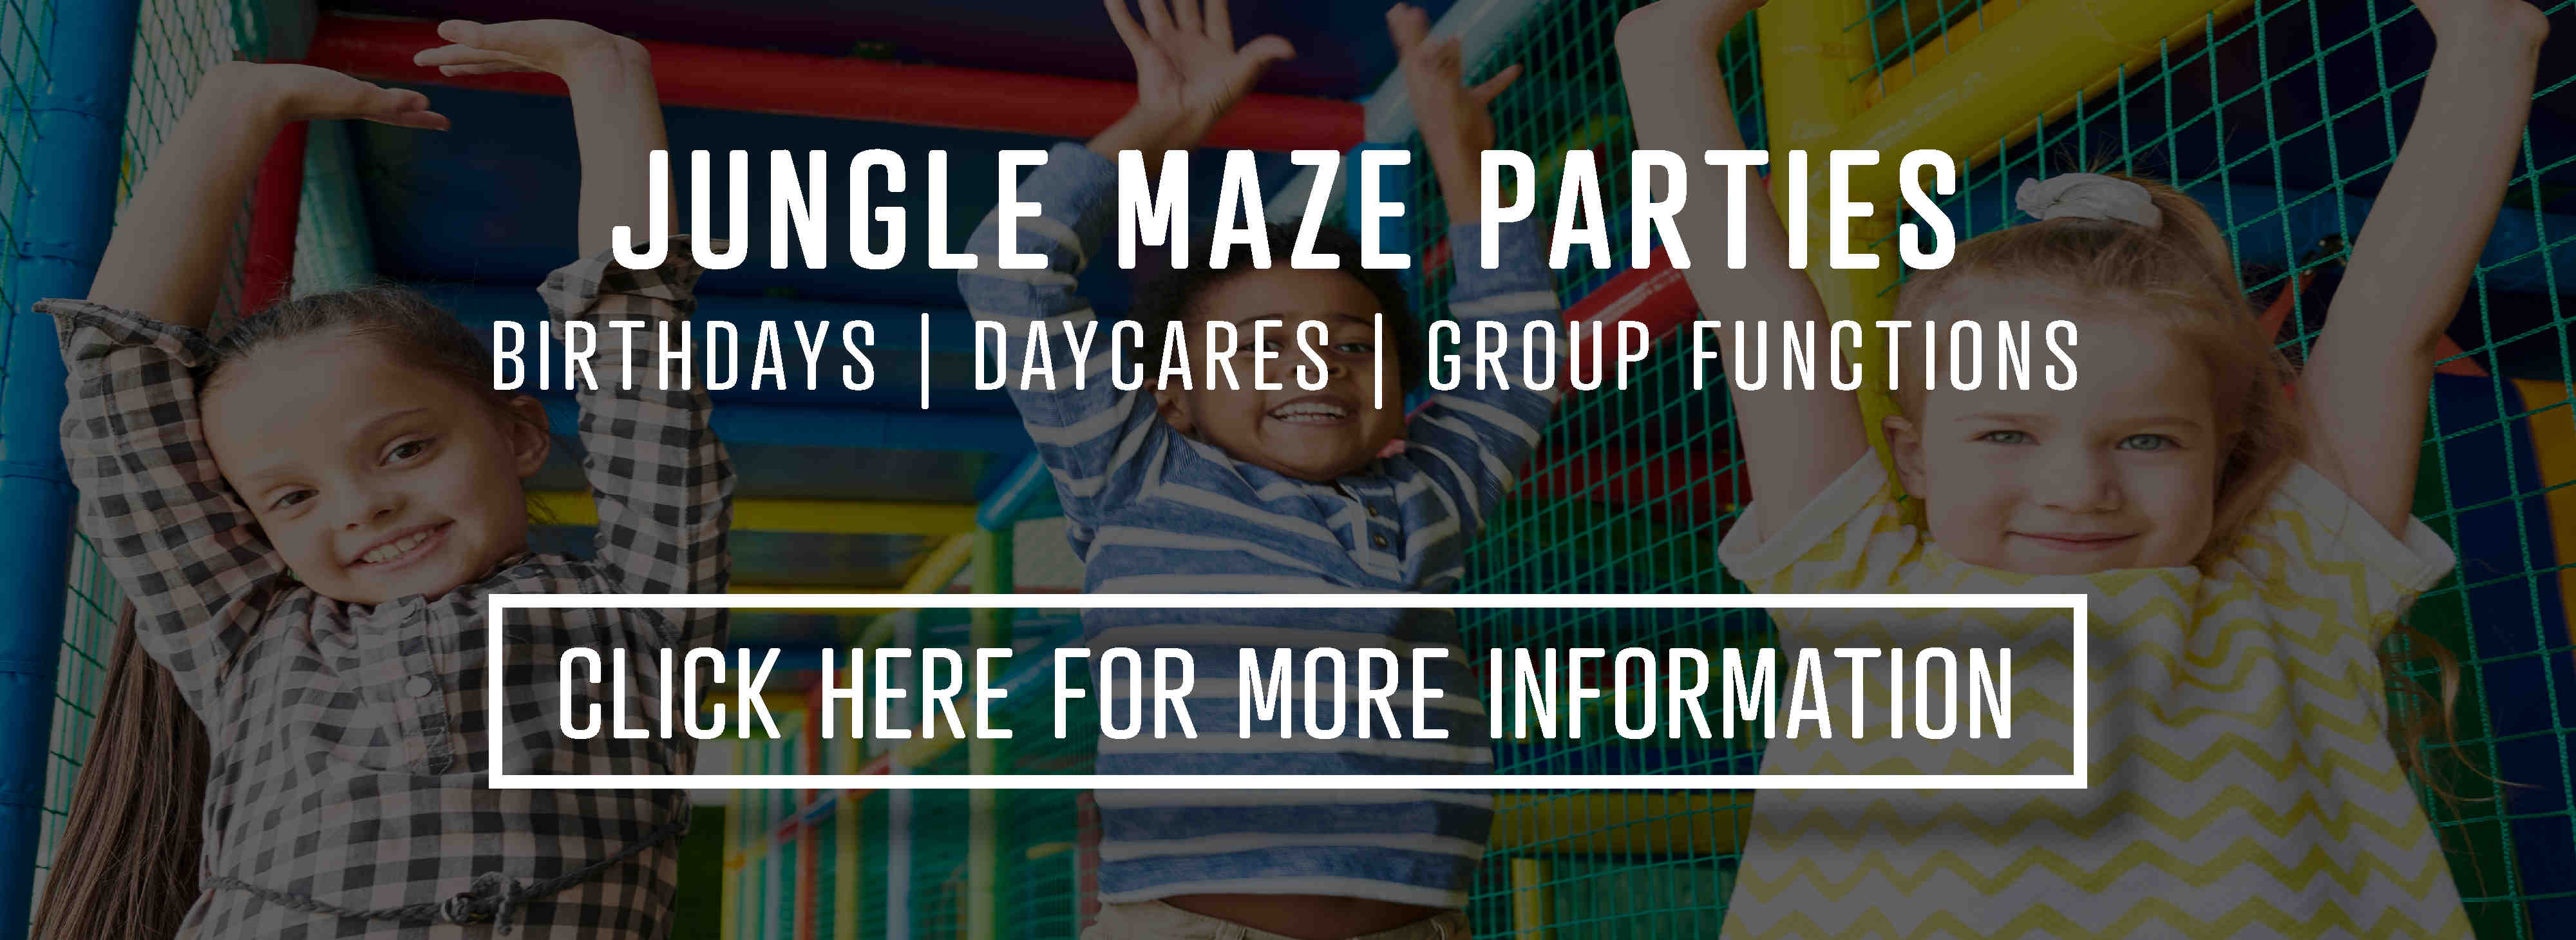 Click here for Jungle Maze play structure party information